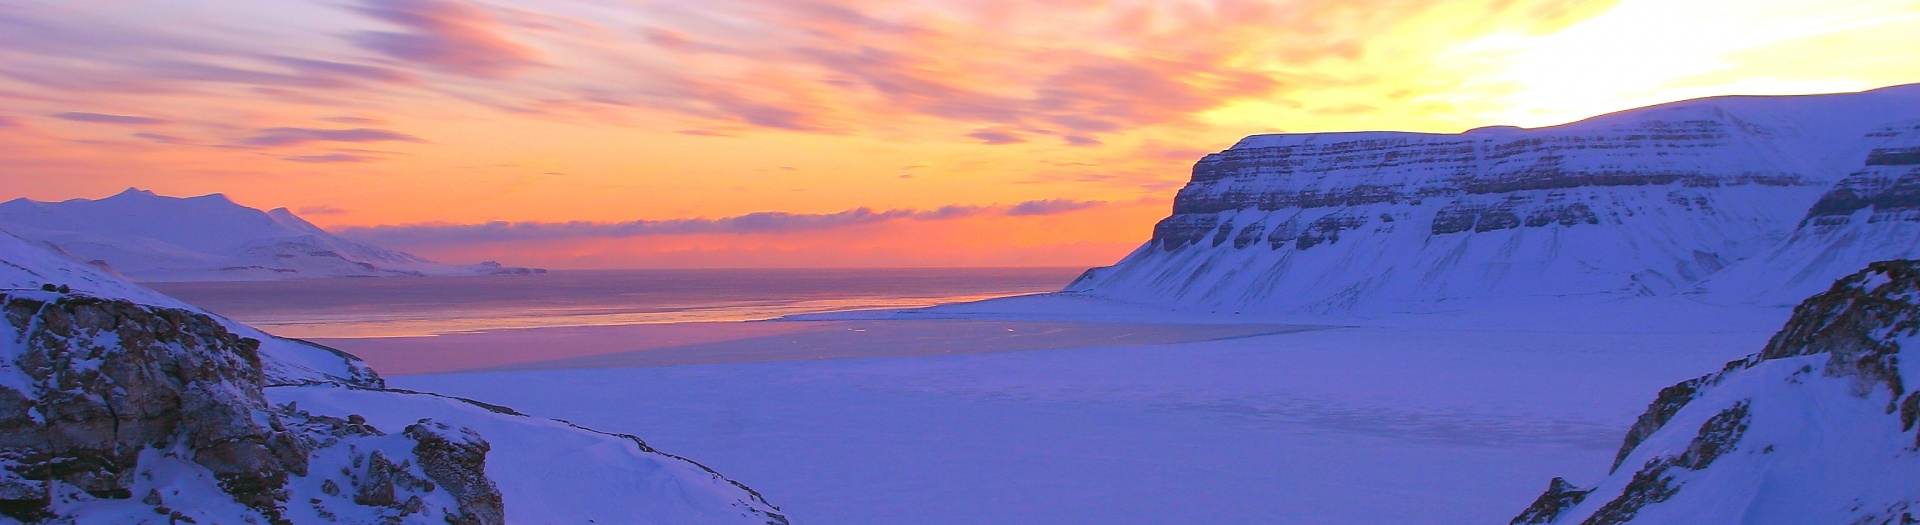 Svalbard in the Winter